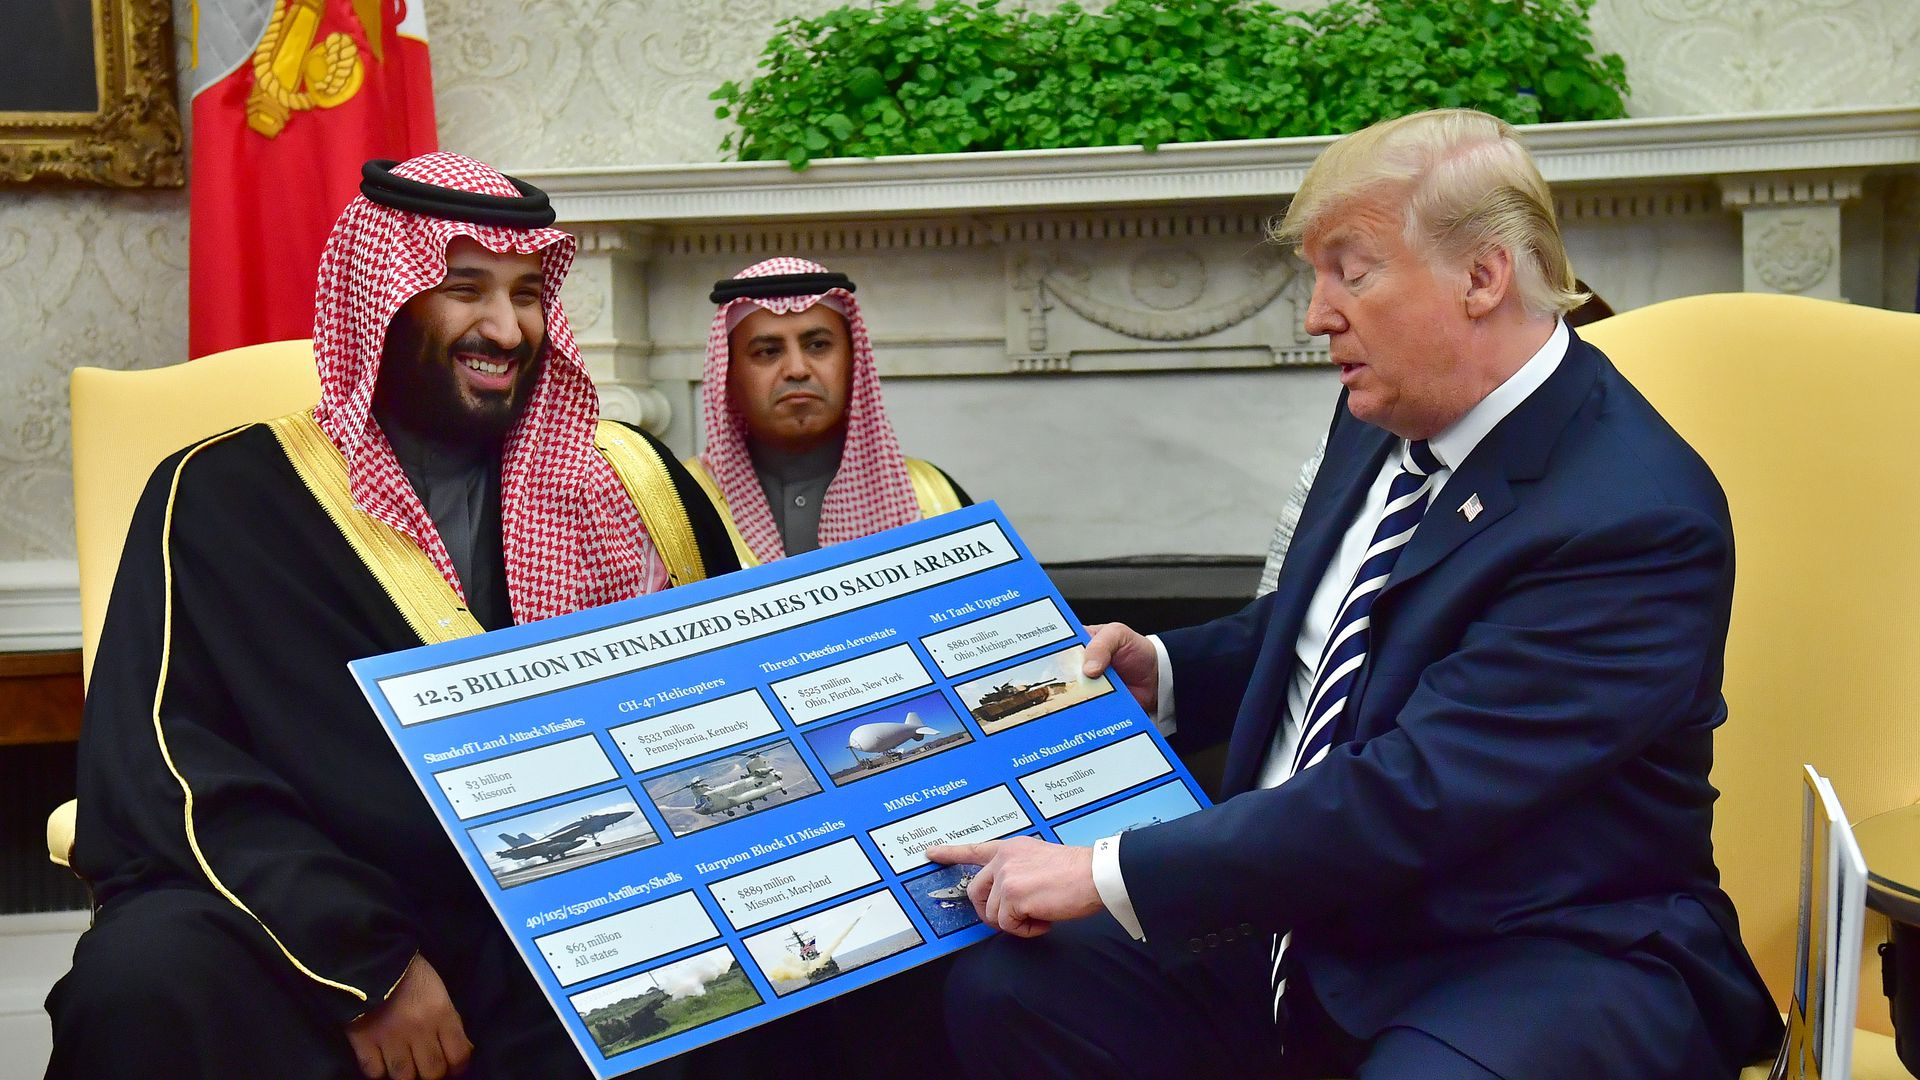 Trump pointing to a poster with arms sales in meeting with Mohammad Bin Salman